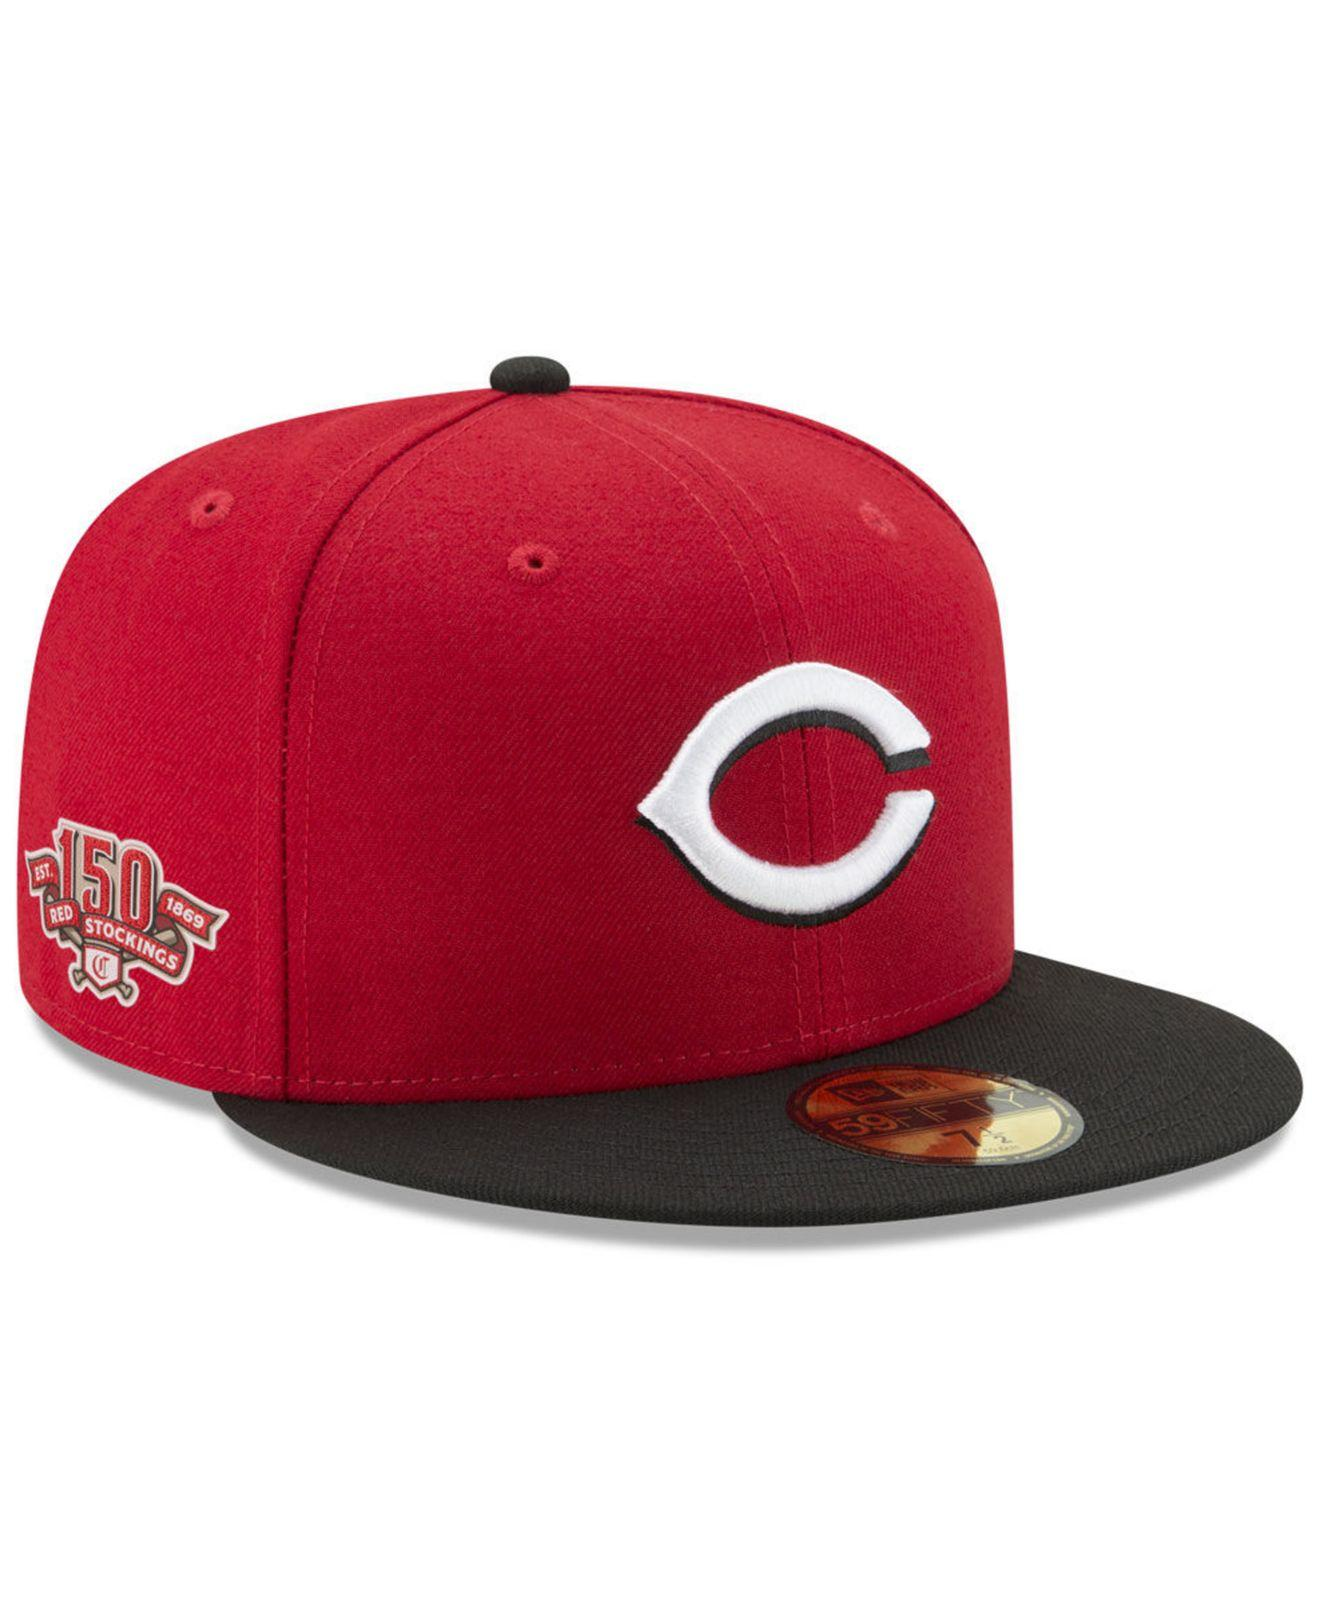 online retailer b2e15 4270a KTZ. Men s Cincinnati Reds Authentic Collection Anniversary Patch 59fifty  Fitted Cap